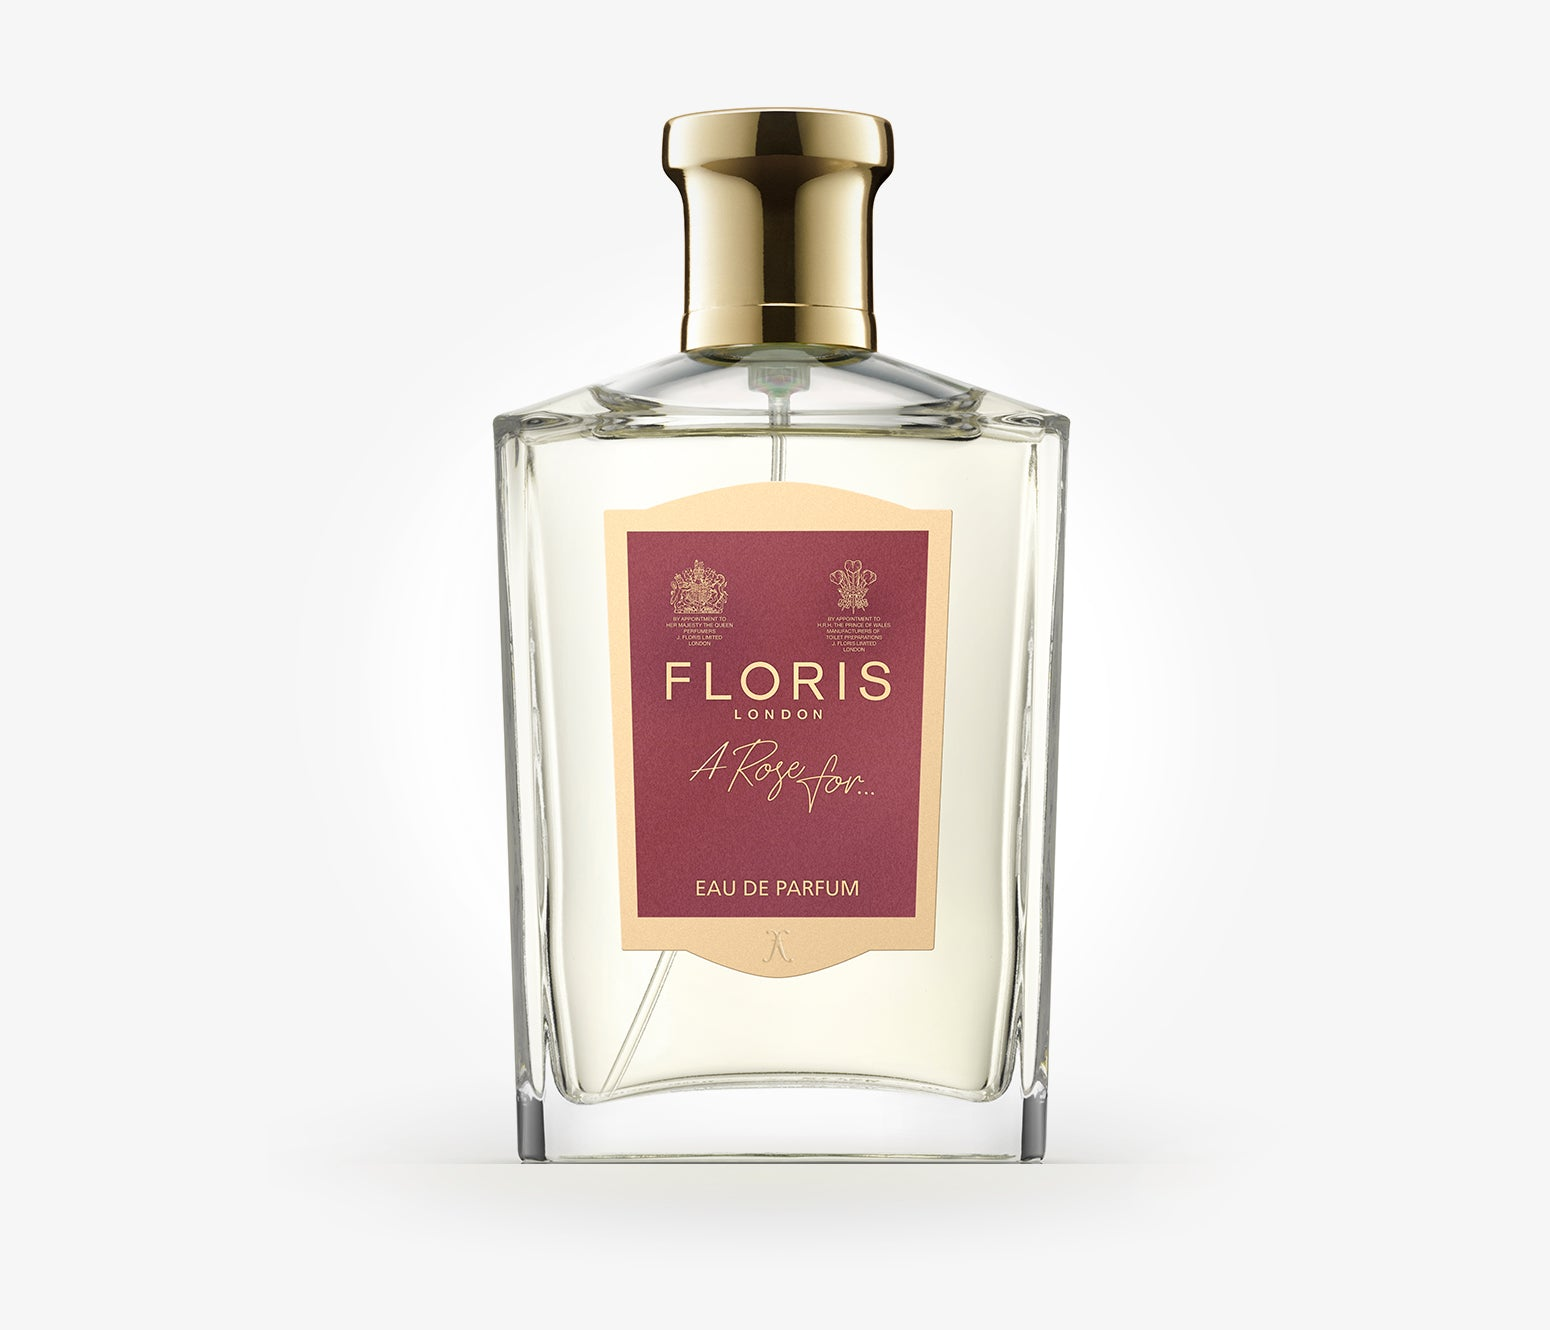 Floris - A Rose For… - 100ml - DPP1469 - product image - Fragrance - Les Senteurs